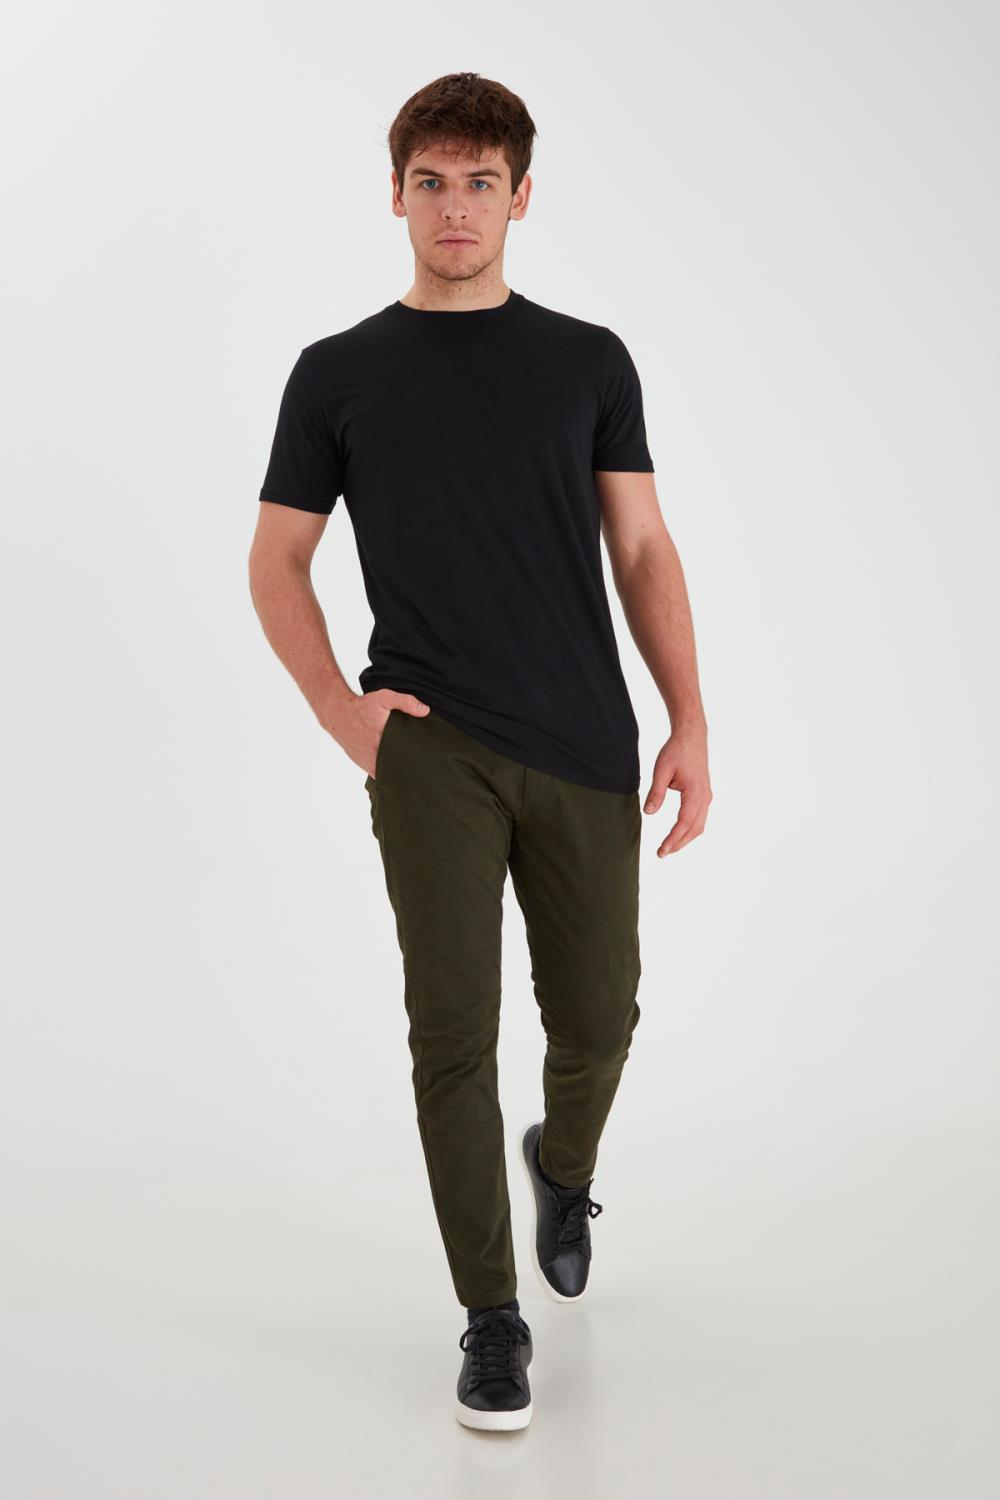 FREDERIC CHINOS GREEN - TAILORED